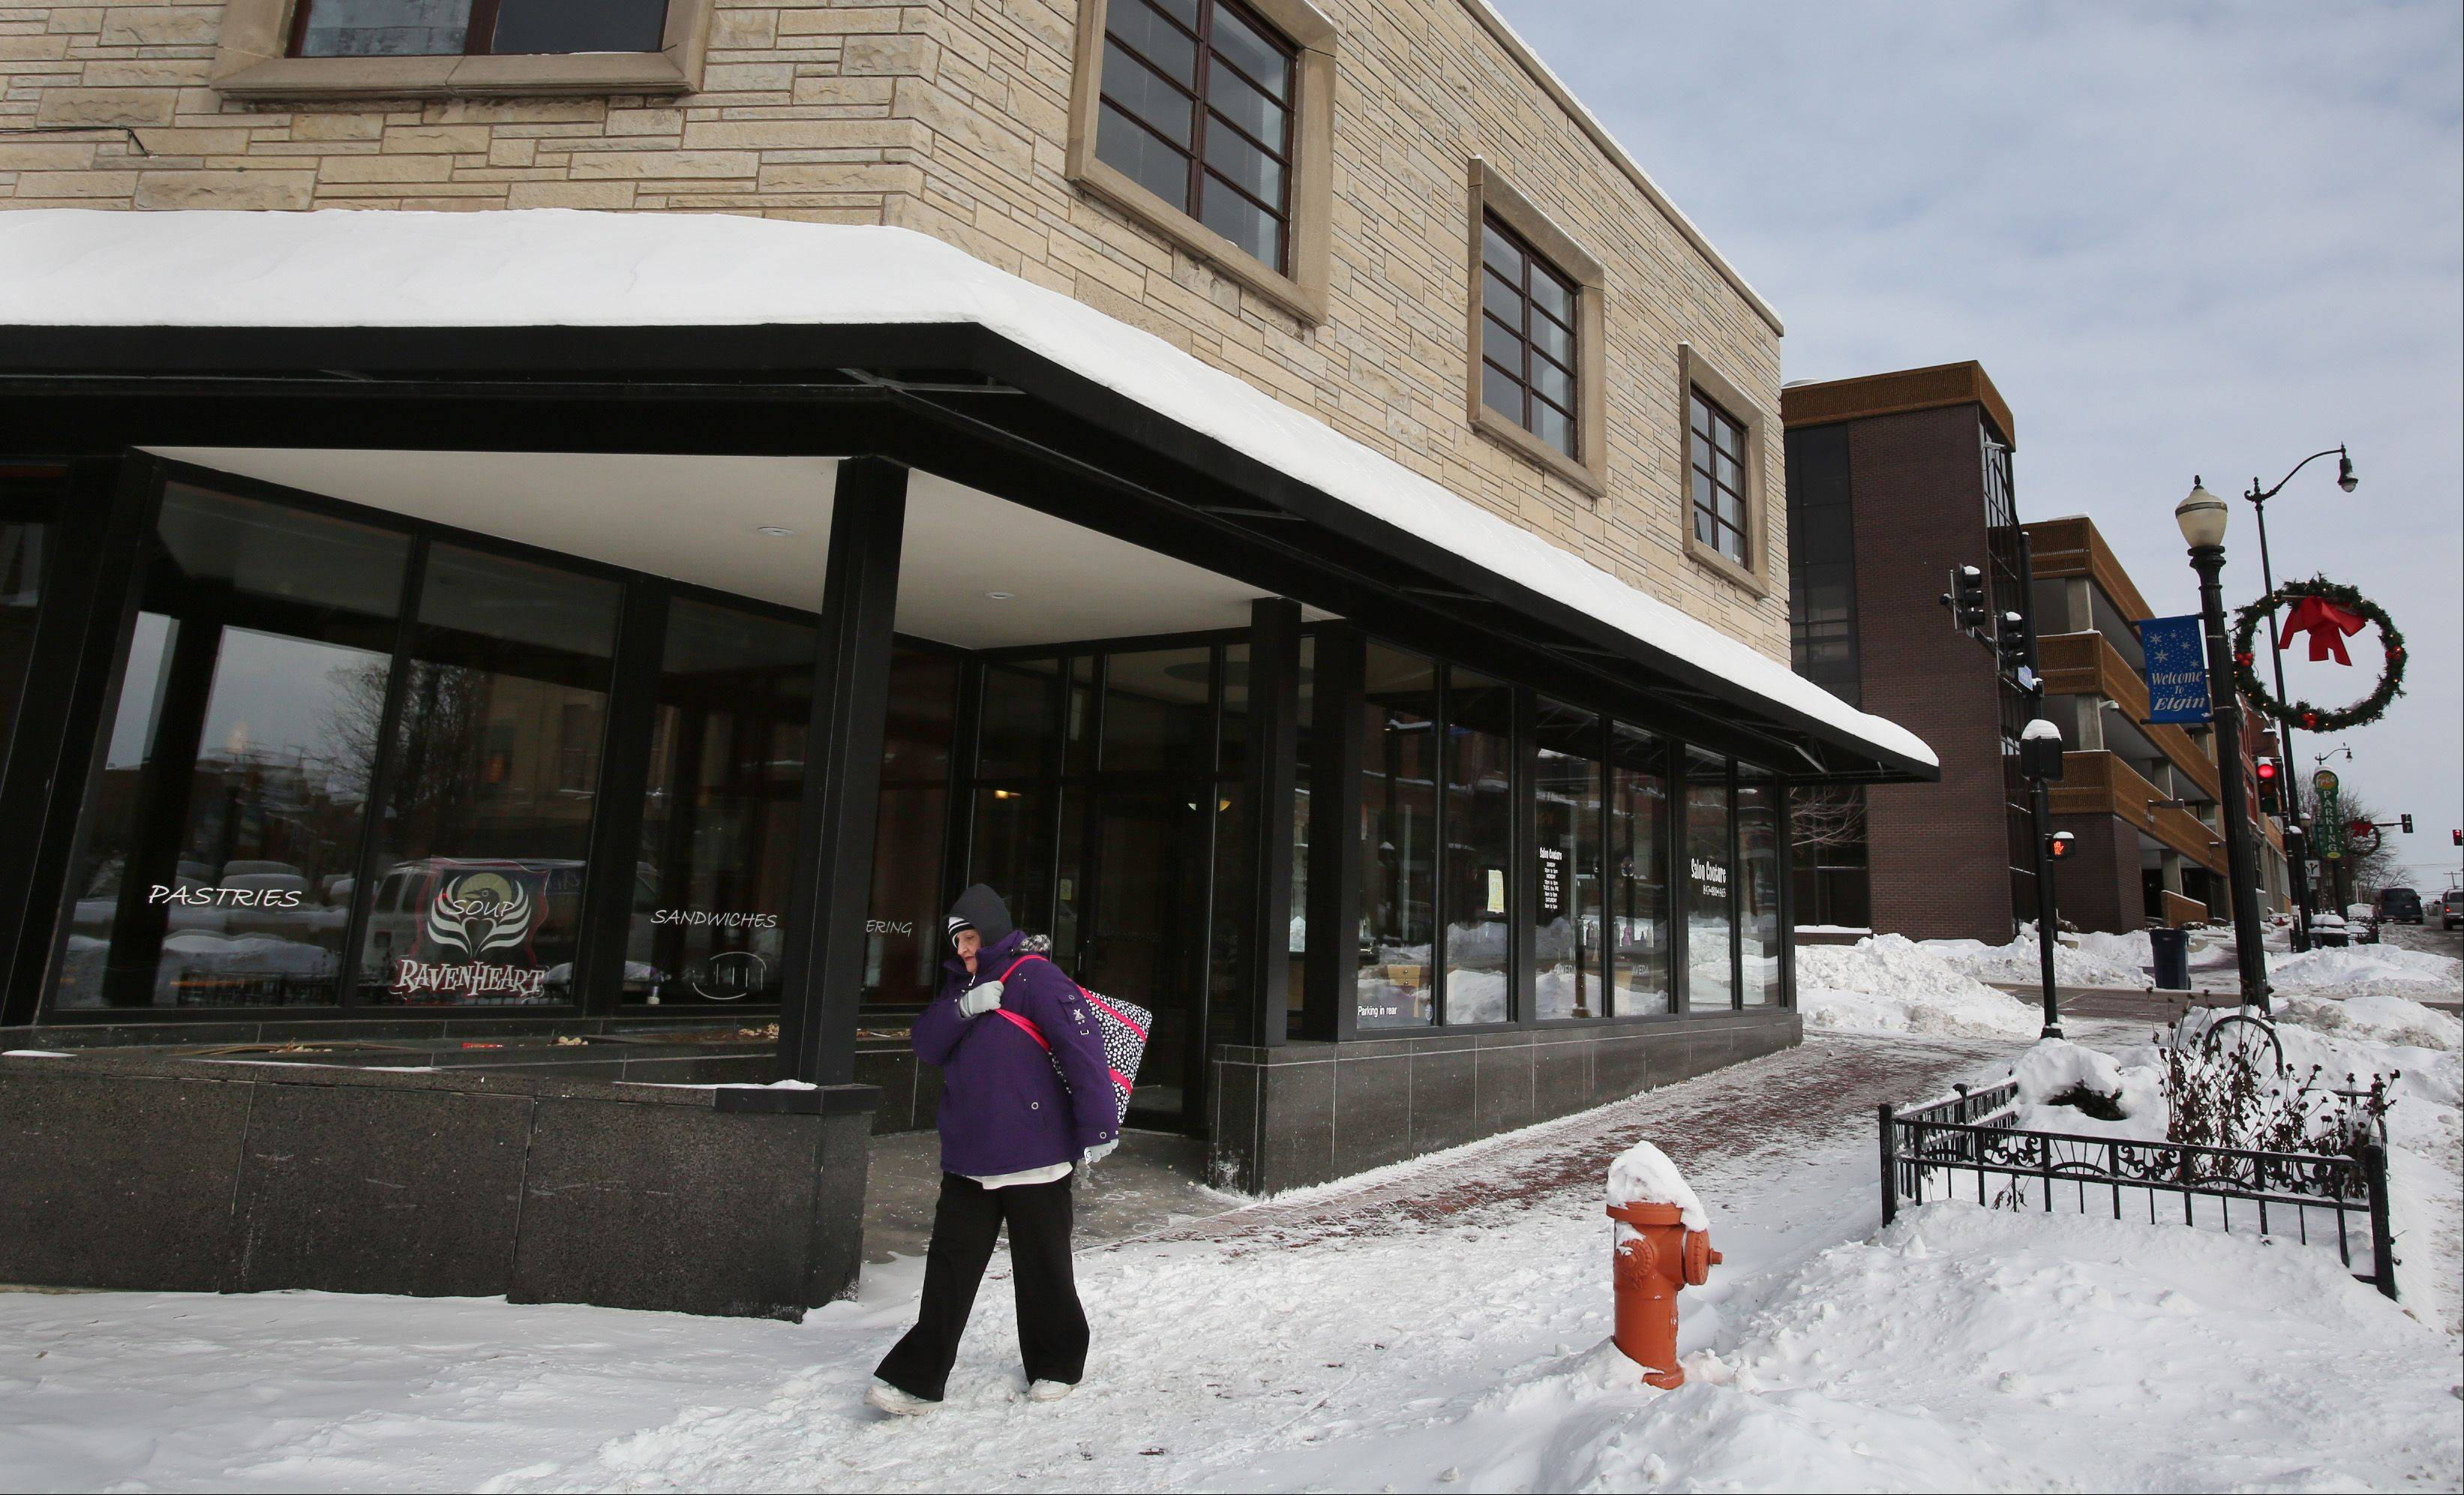 Blue Box Cafe is slated to open the week of Feb. 17 at 176 E. Chicago St. in Elgin, in the space formerly occupied by Ravenheart Coffee, said owner Chris Mau of Elgin.